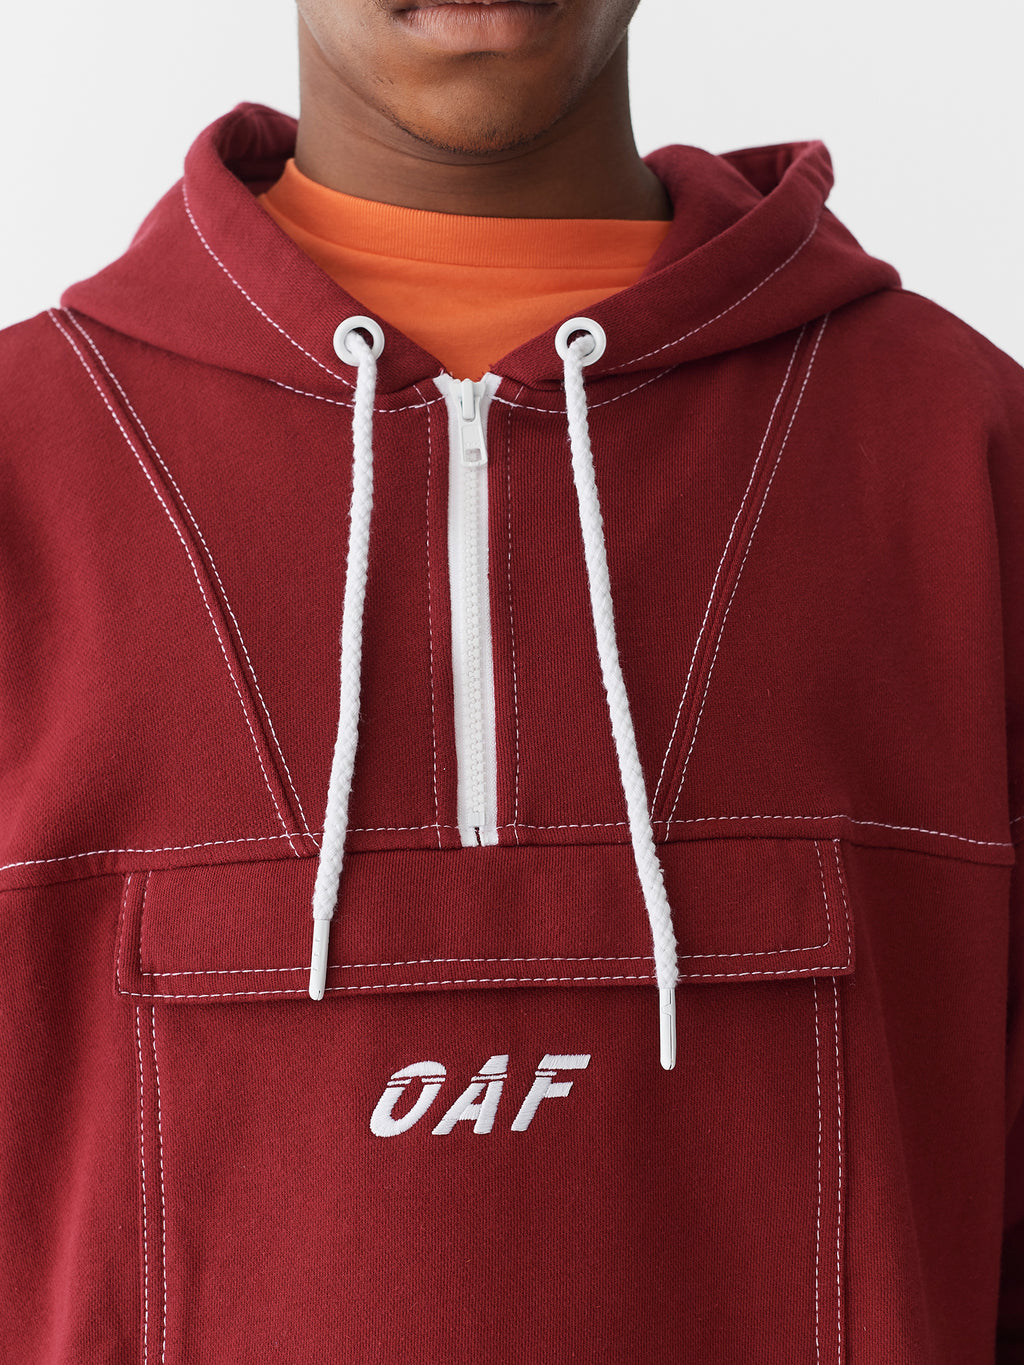 Lazy Oaf Stitched Up Maroon Hoodie